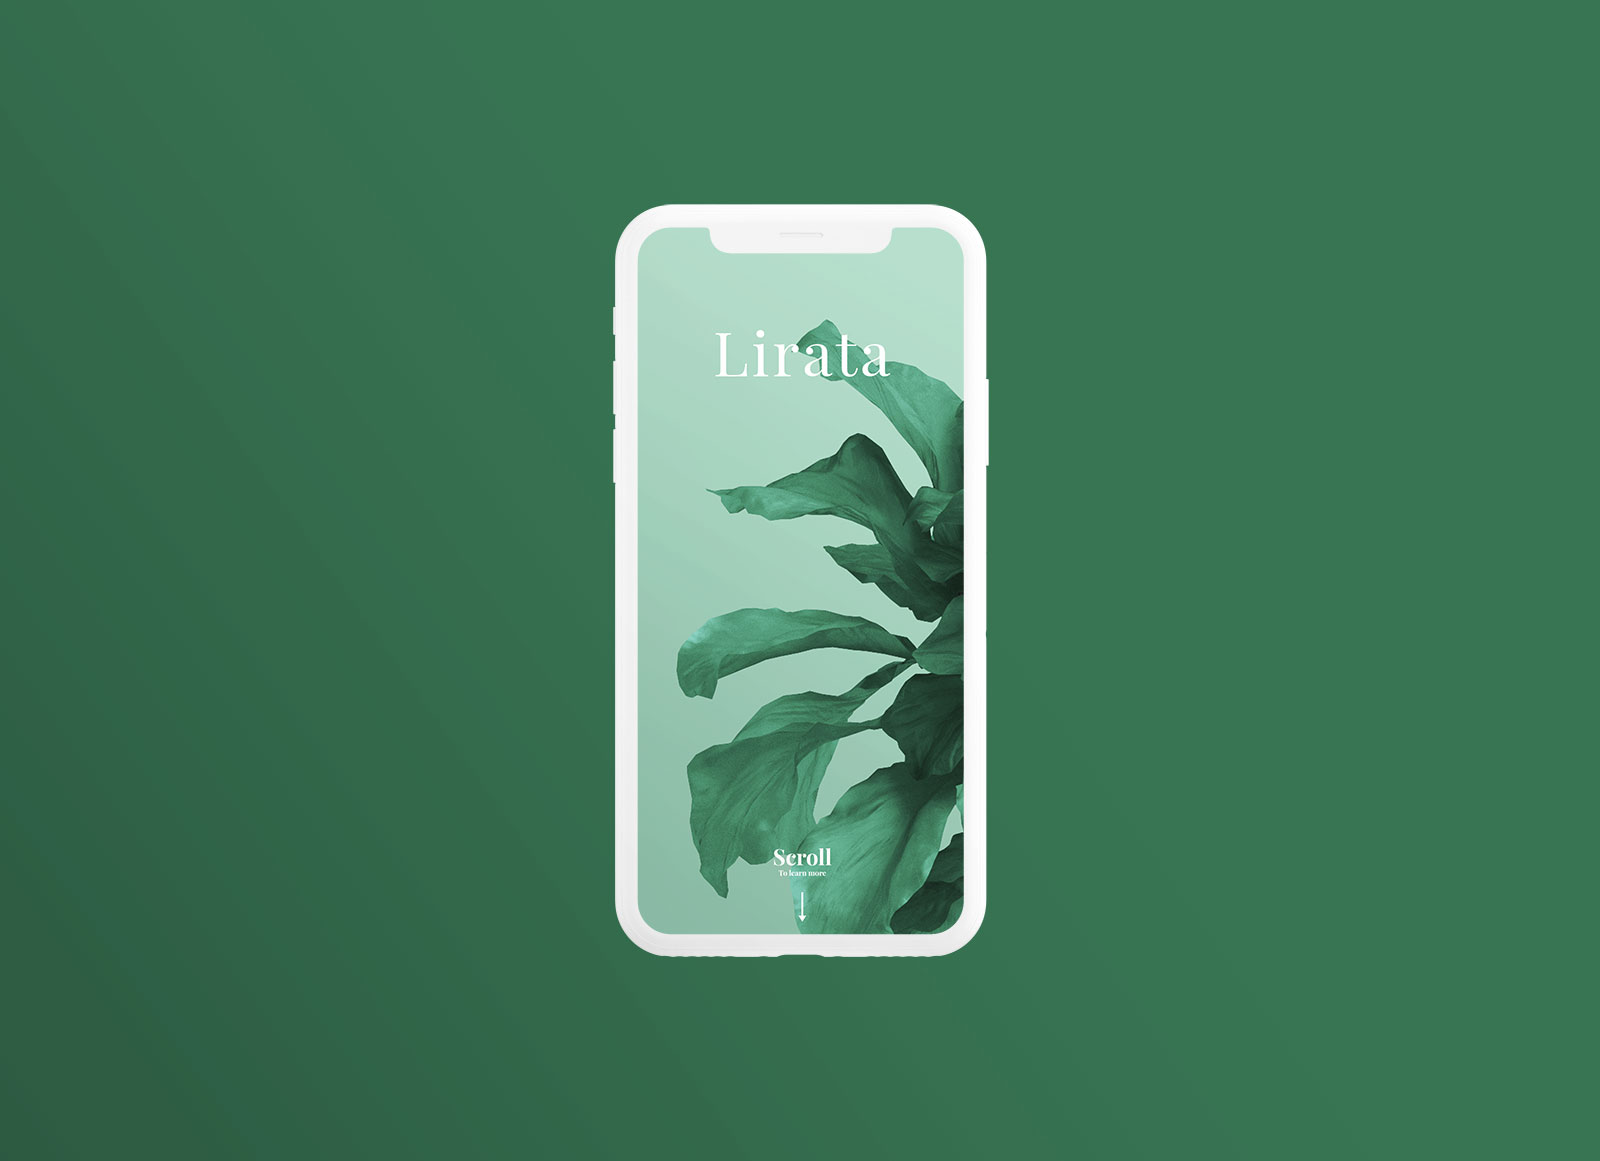 Free-Fully-Customizable-iPhone-X-Flat-Mockup-PSD-2